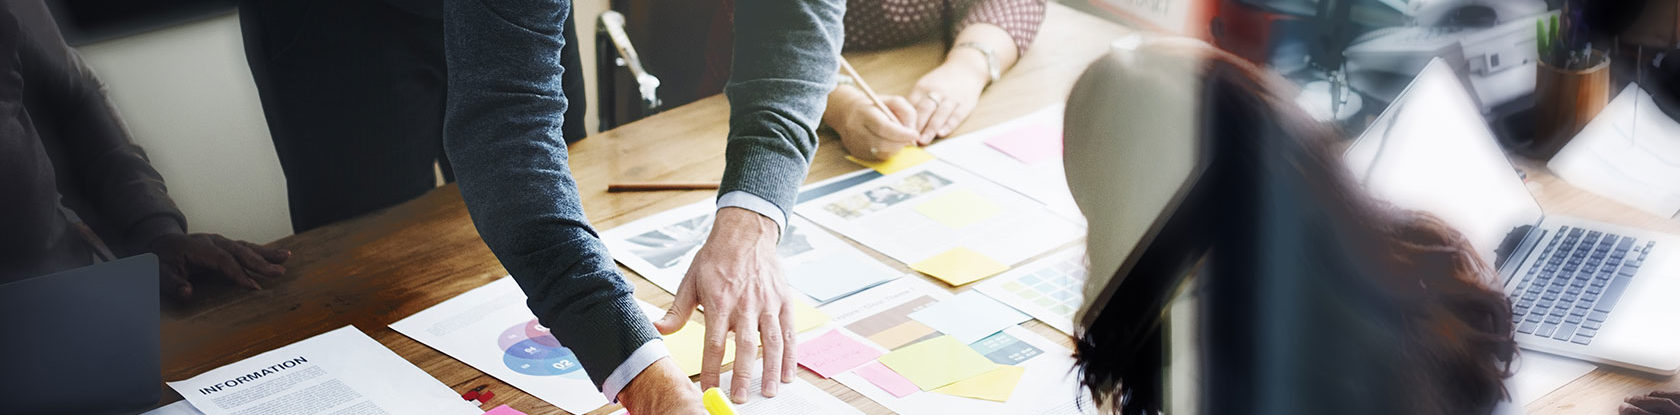 Digital Strategy - Our Approach - Centric Consulting